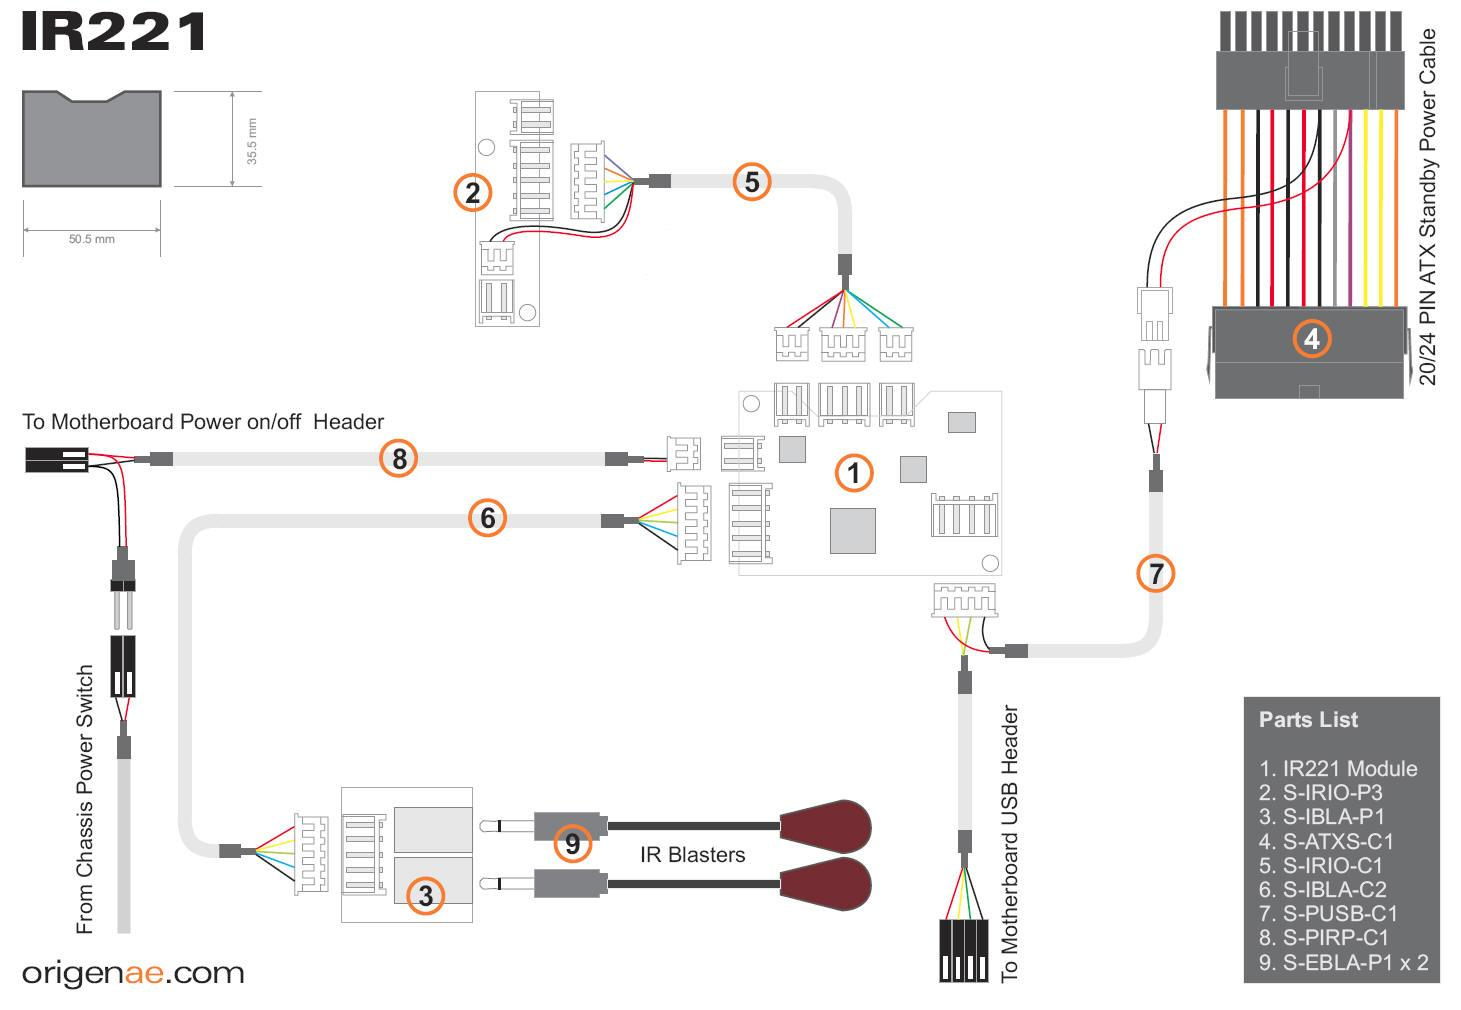 Micro Usb Wiring Diagram | Manual E-Books - Micro Usb Wiring Diagram